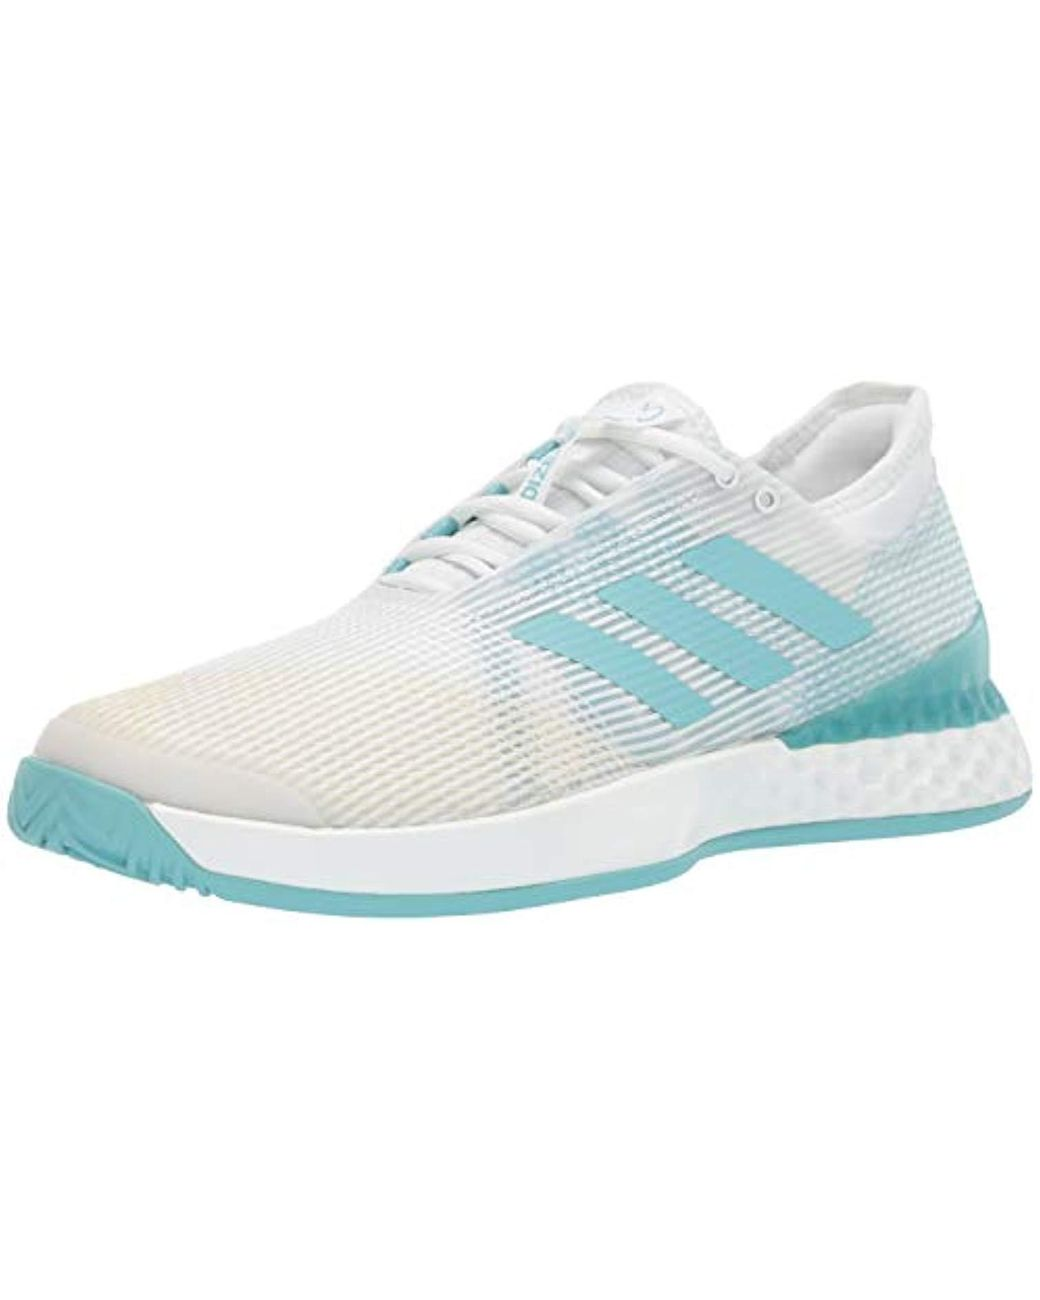 adidas Adizero Ubersonic 3 Citified Shoes for Men Lyst